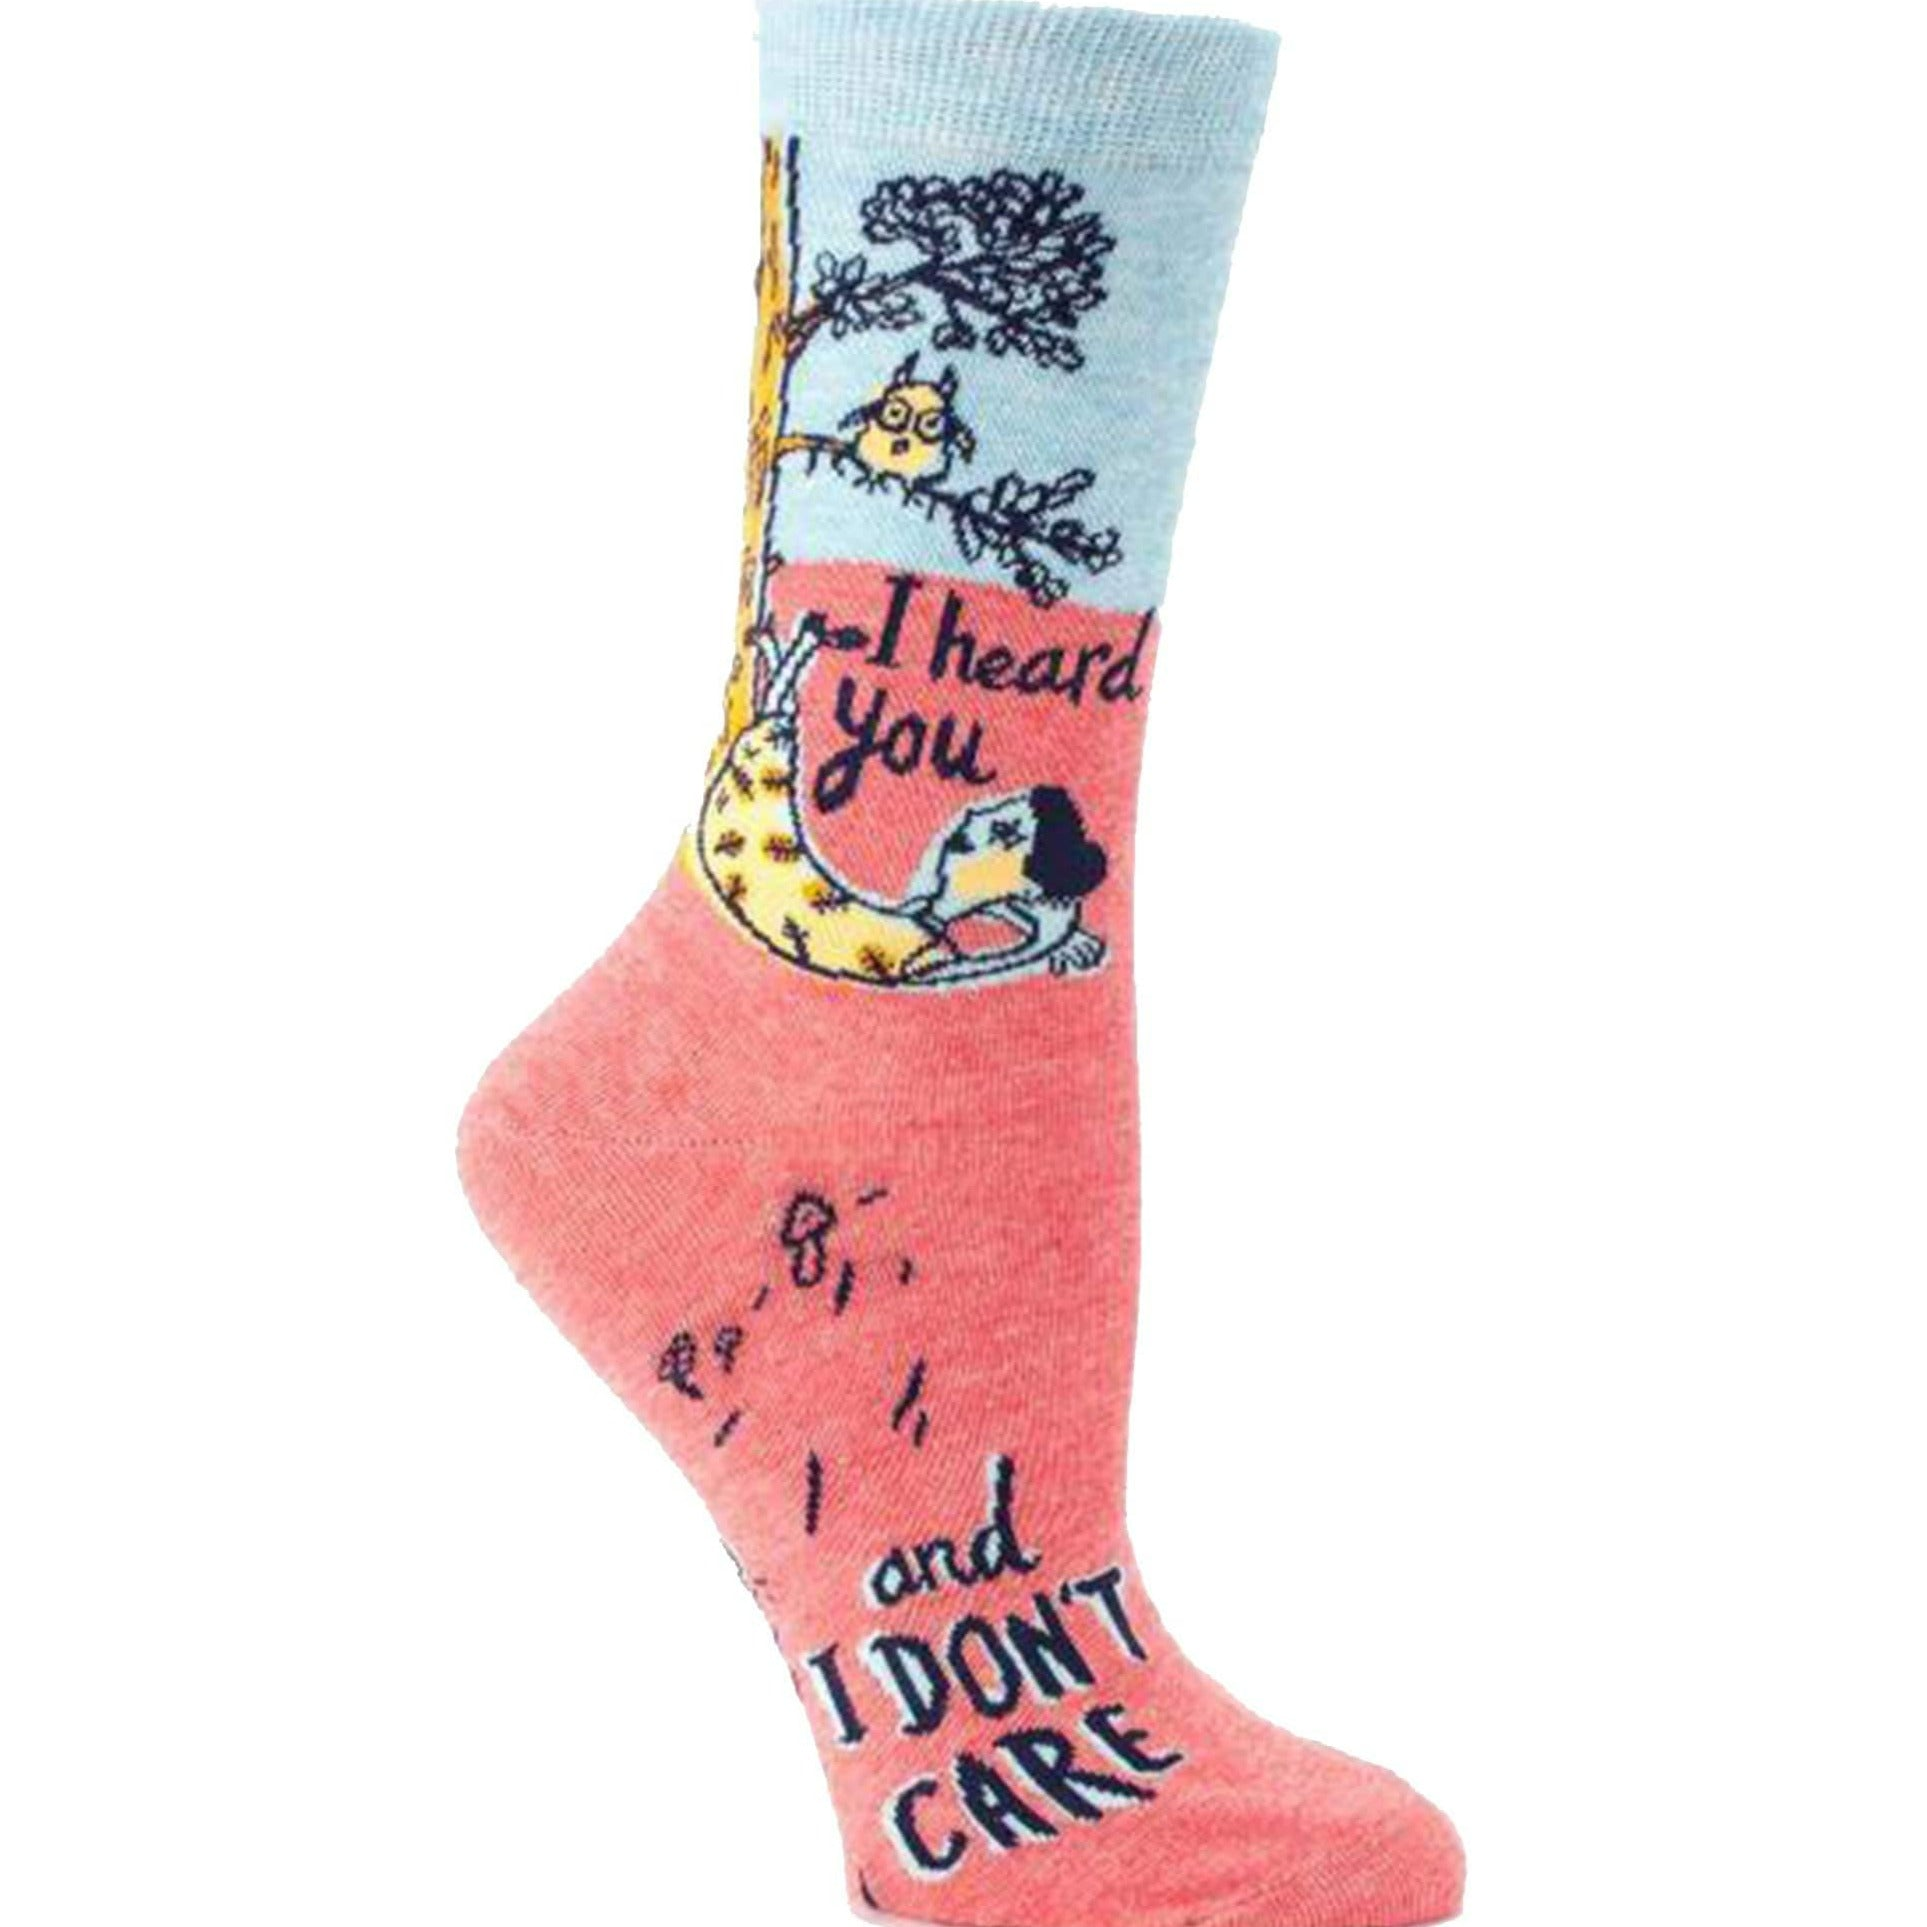 I Heard You And I Don't Care Socks - Crew Socks for Women